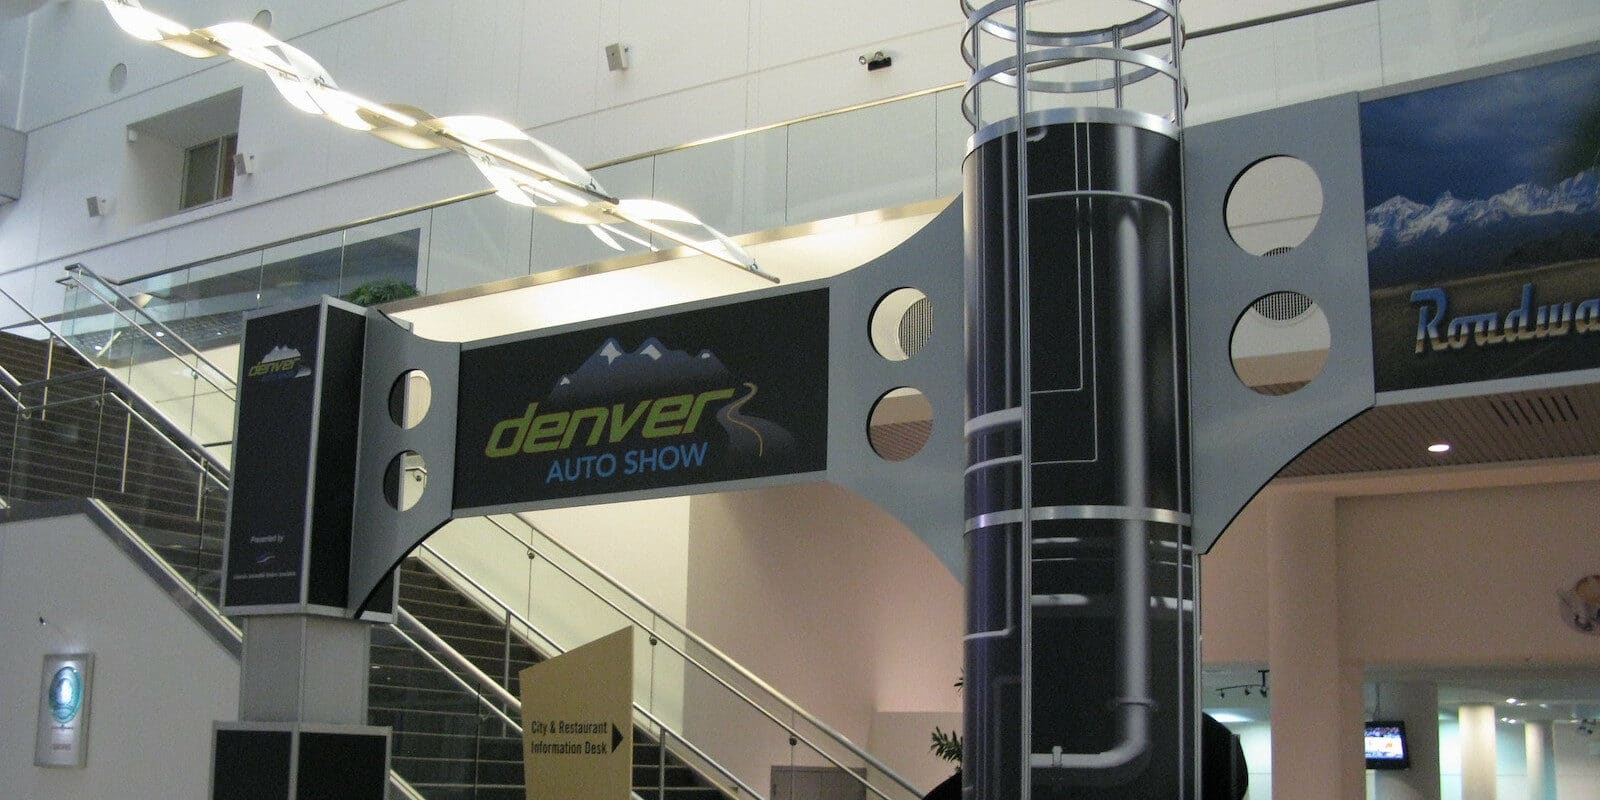 Image of the Denver Auto Show banner